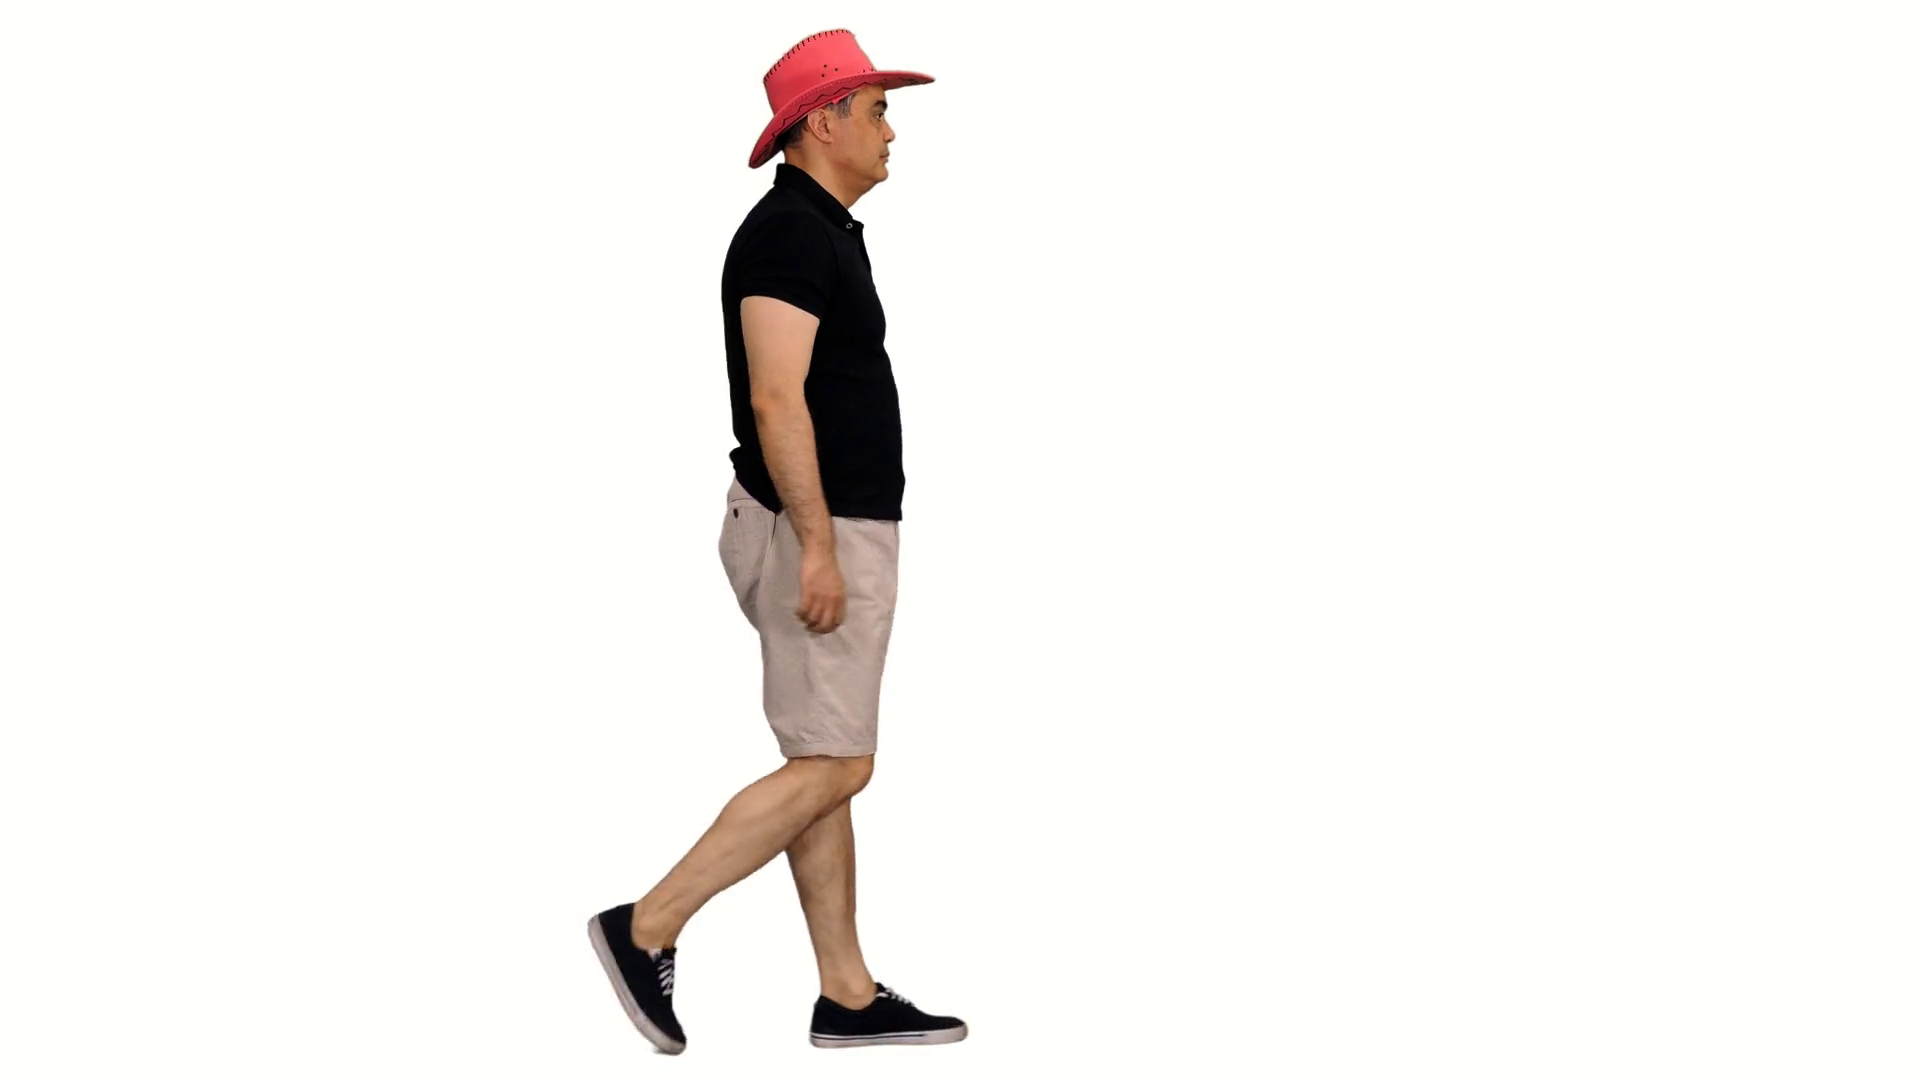 Person Walking Side View Png (107+ images in Collection) Page 2.